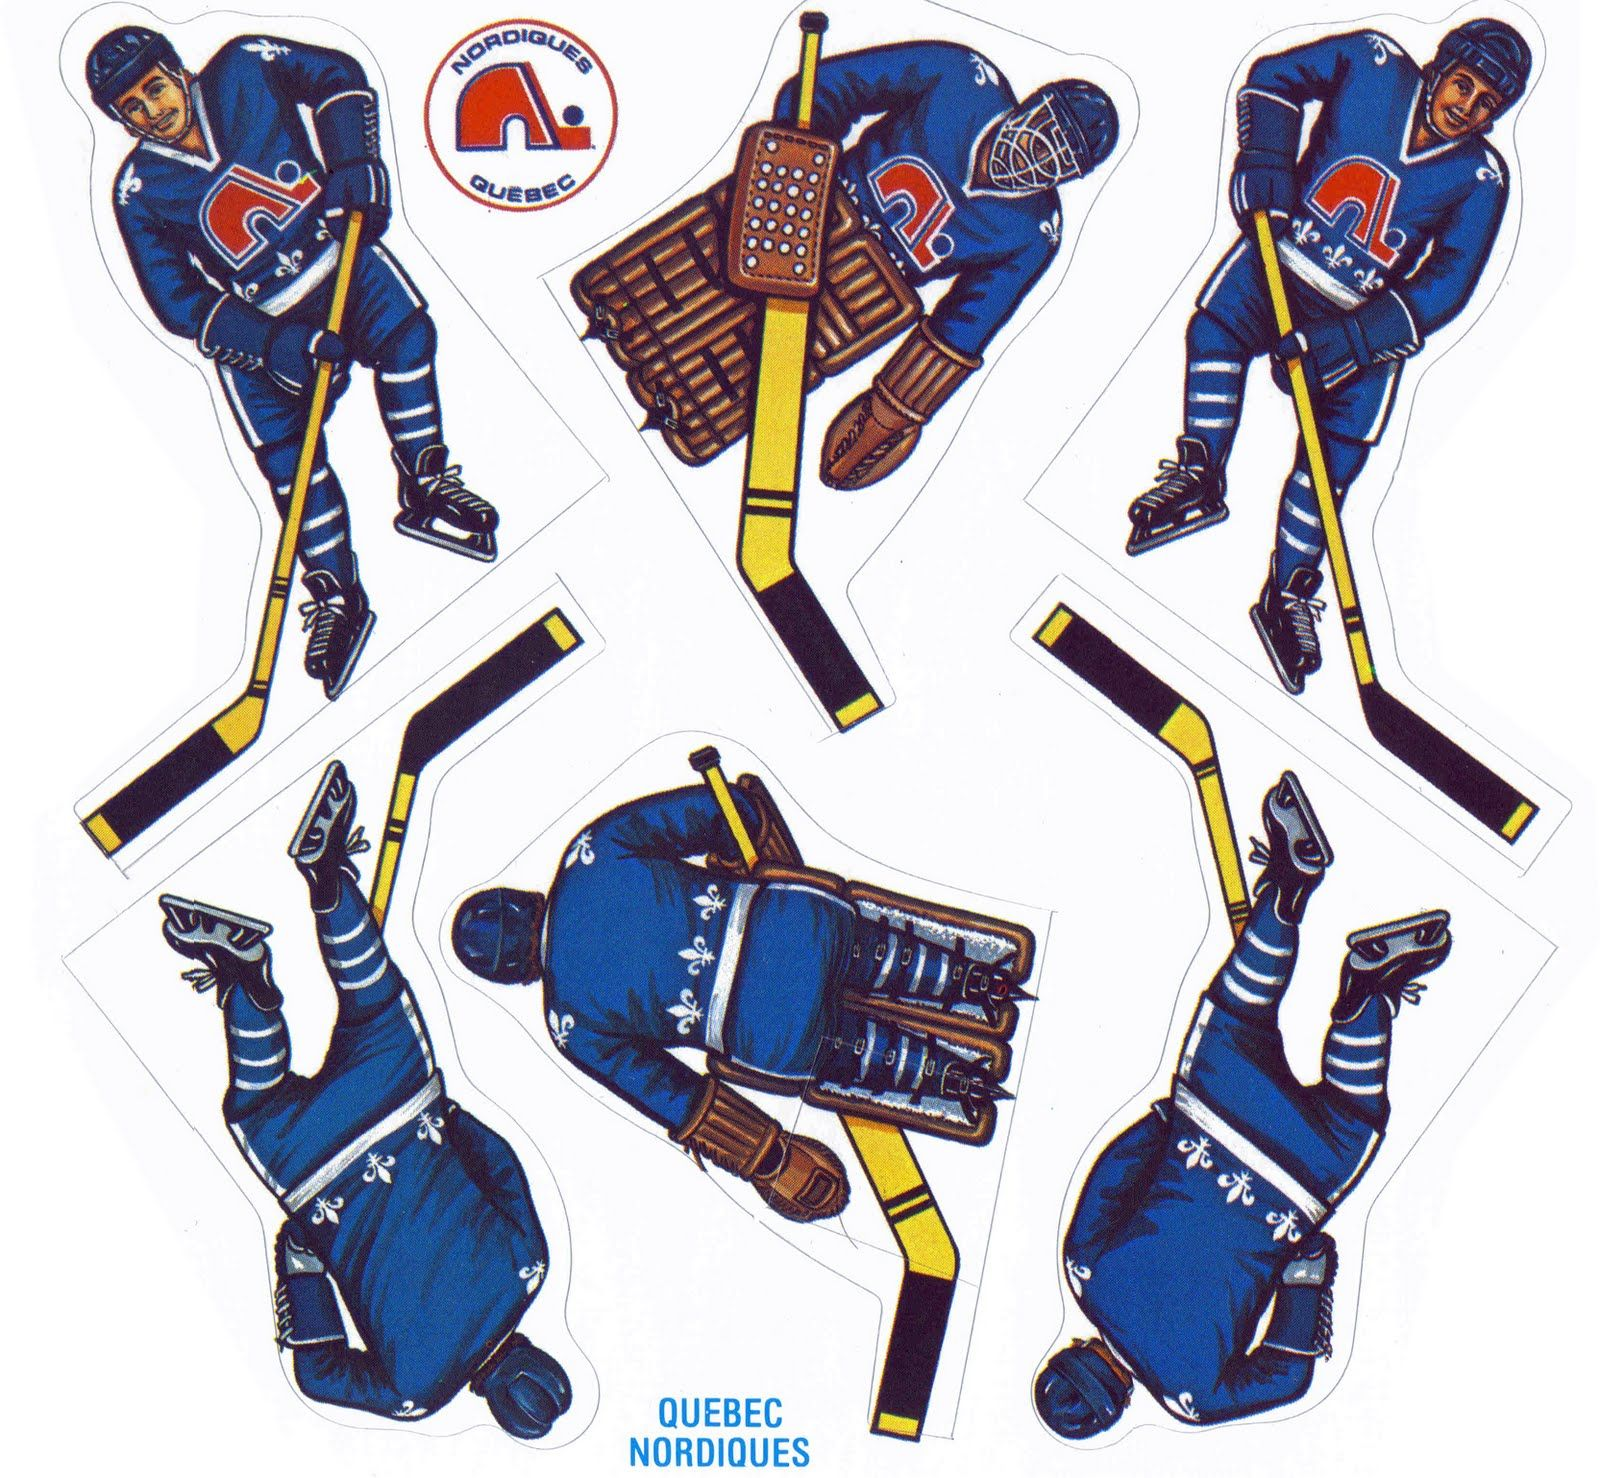 quebec nordiques coleco game stickers nhl hockey table top rh pinterest com